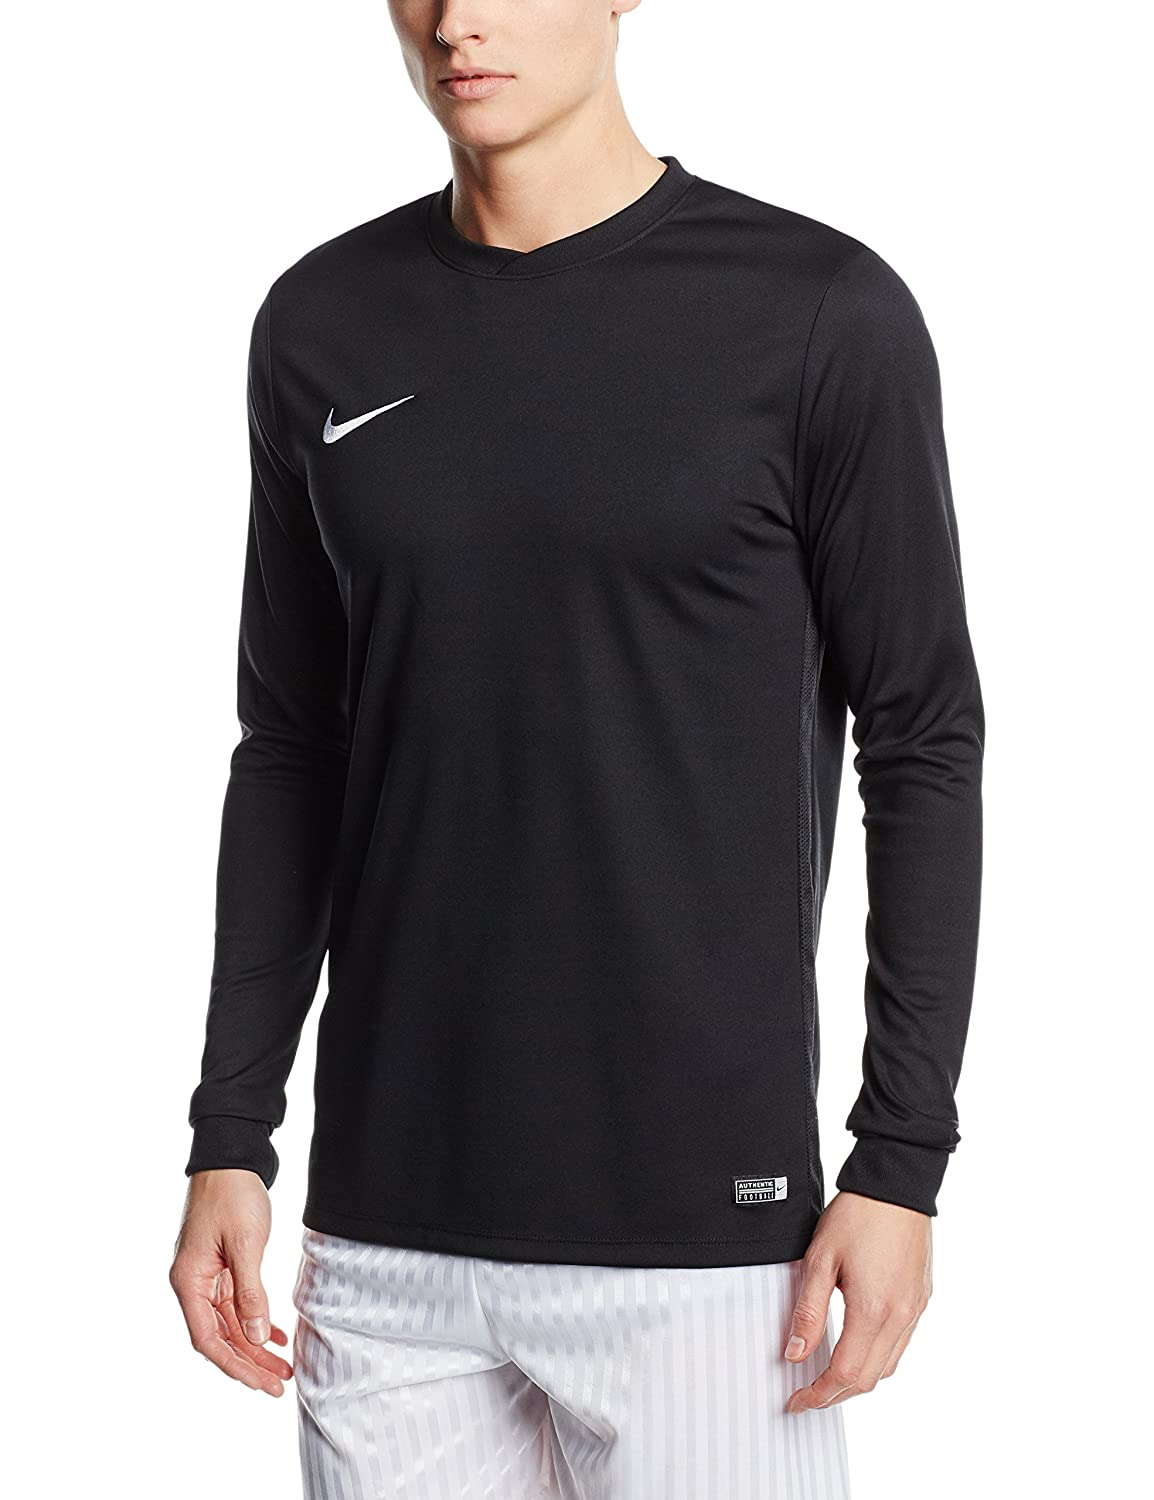 Nike Long-Sleeved Men s Park VI Jersey  Amazon.co.uk  Sports   Outdoors 777eb4924